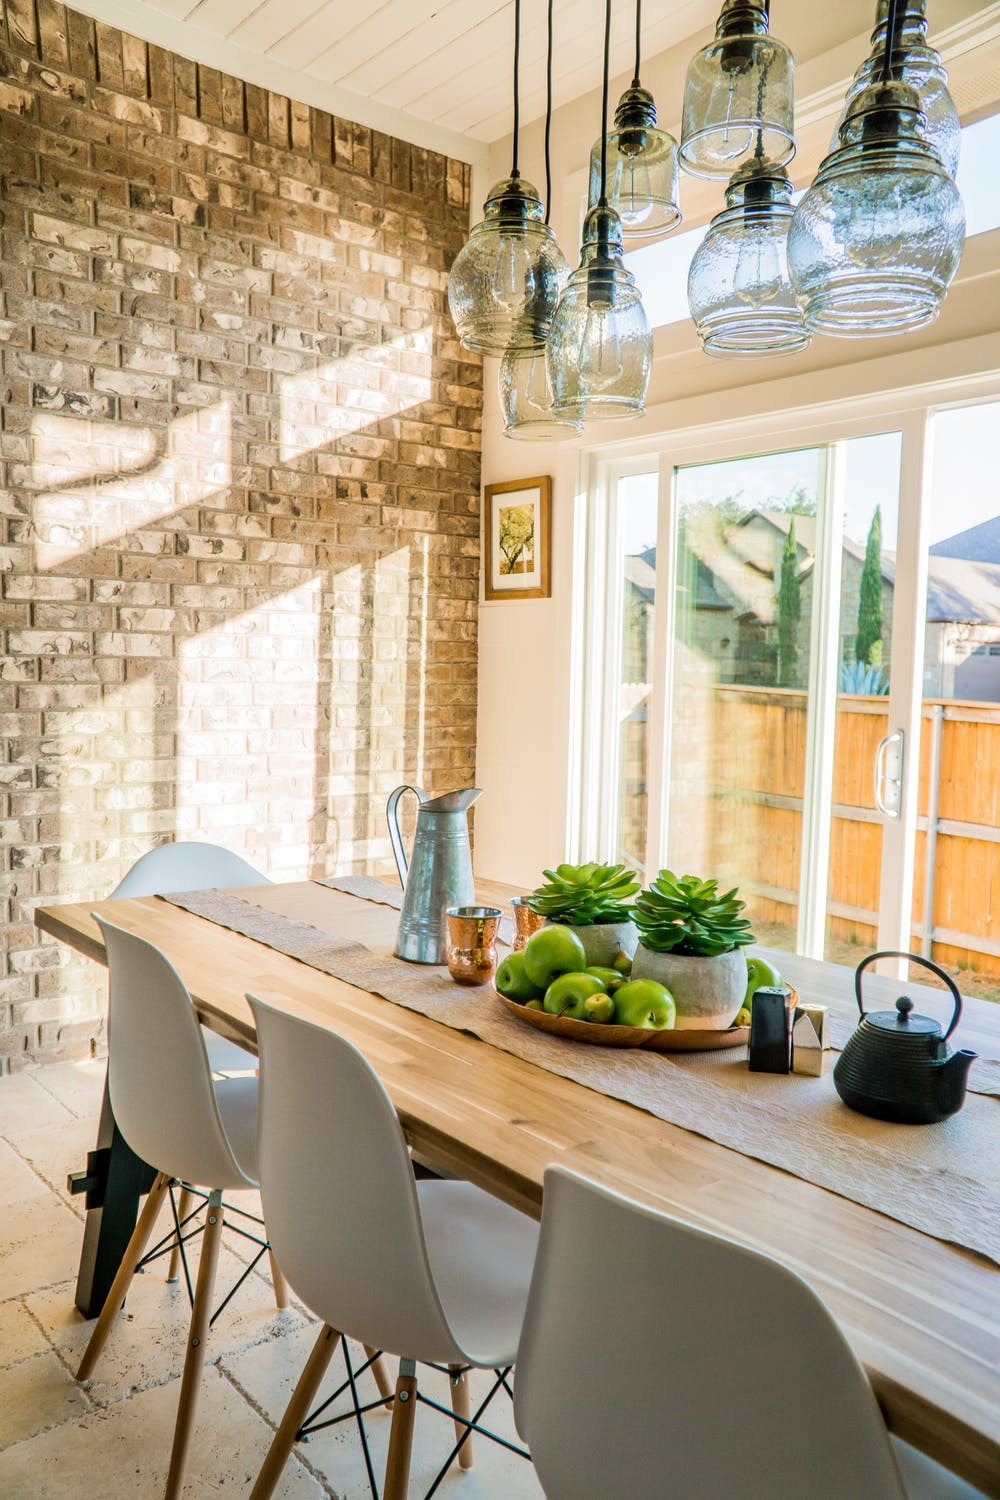 How To Turn Your Conservatory into a Usable Space